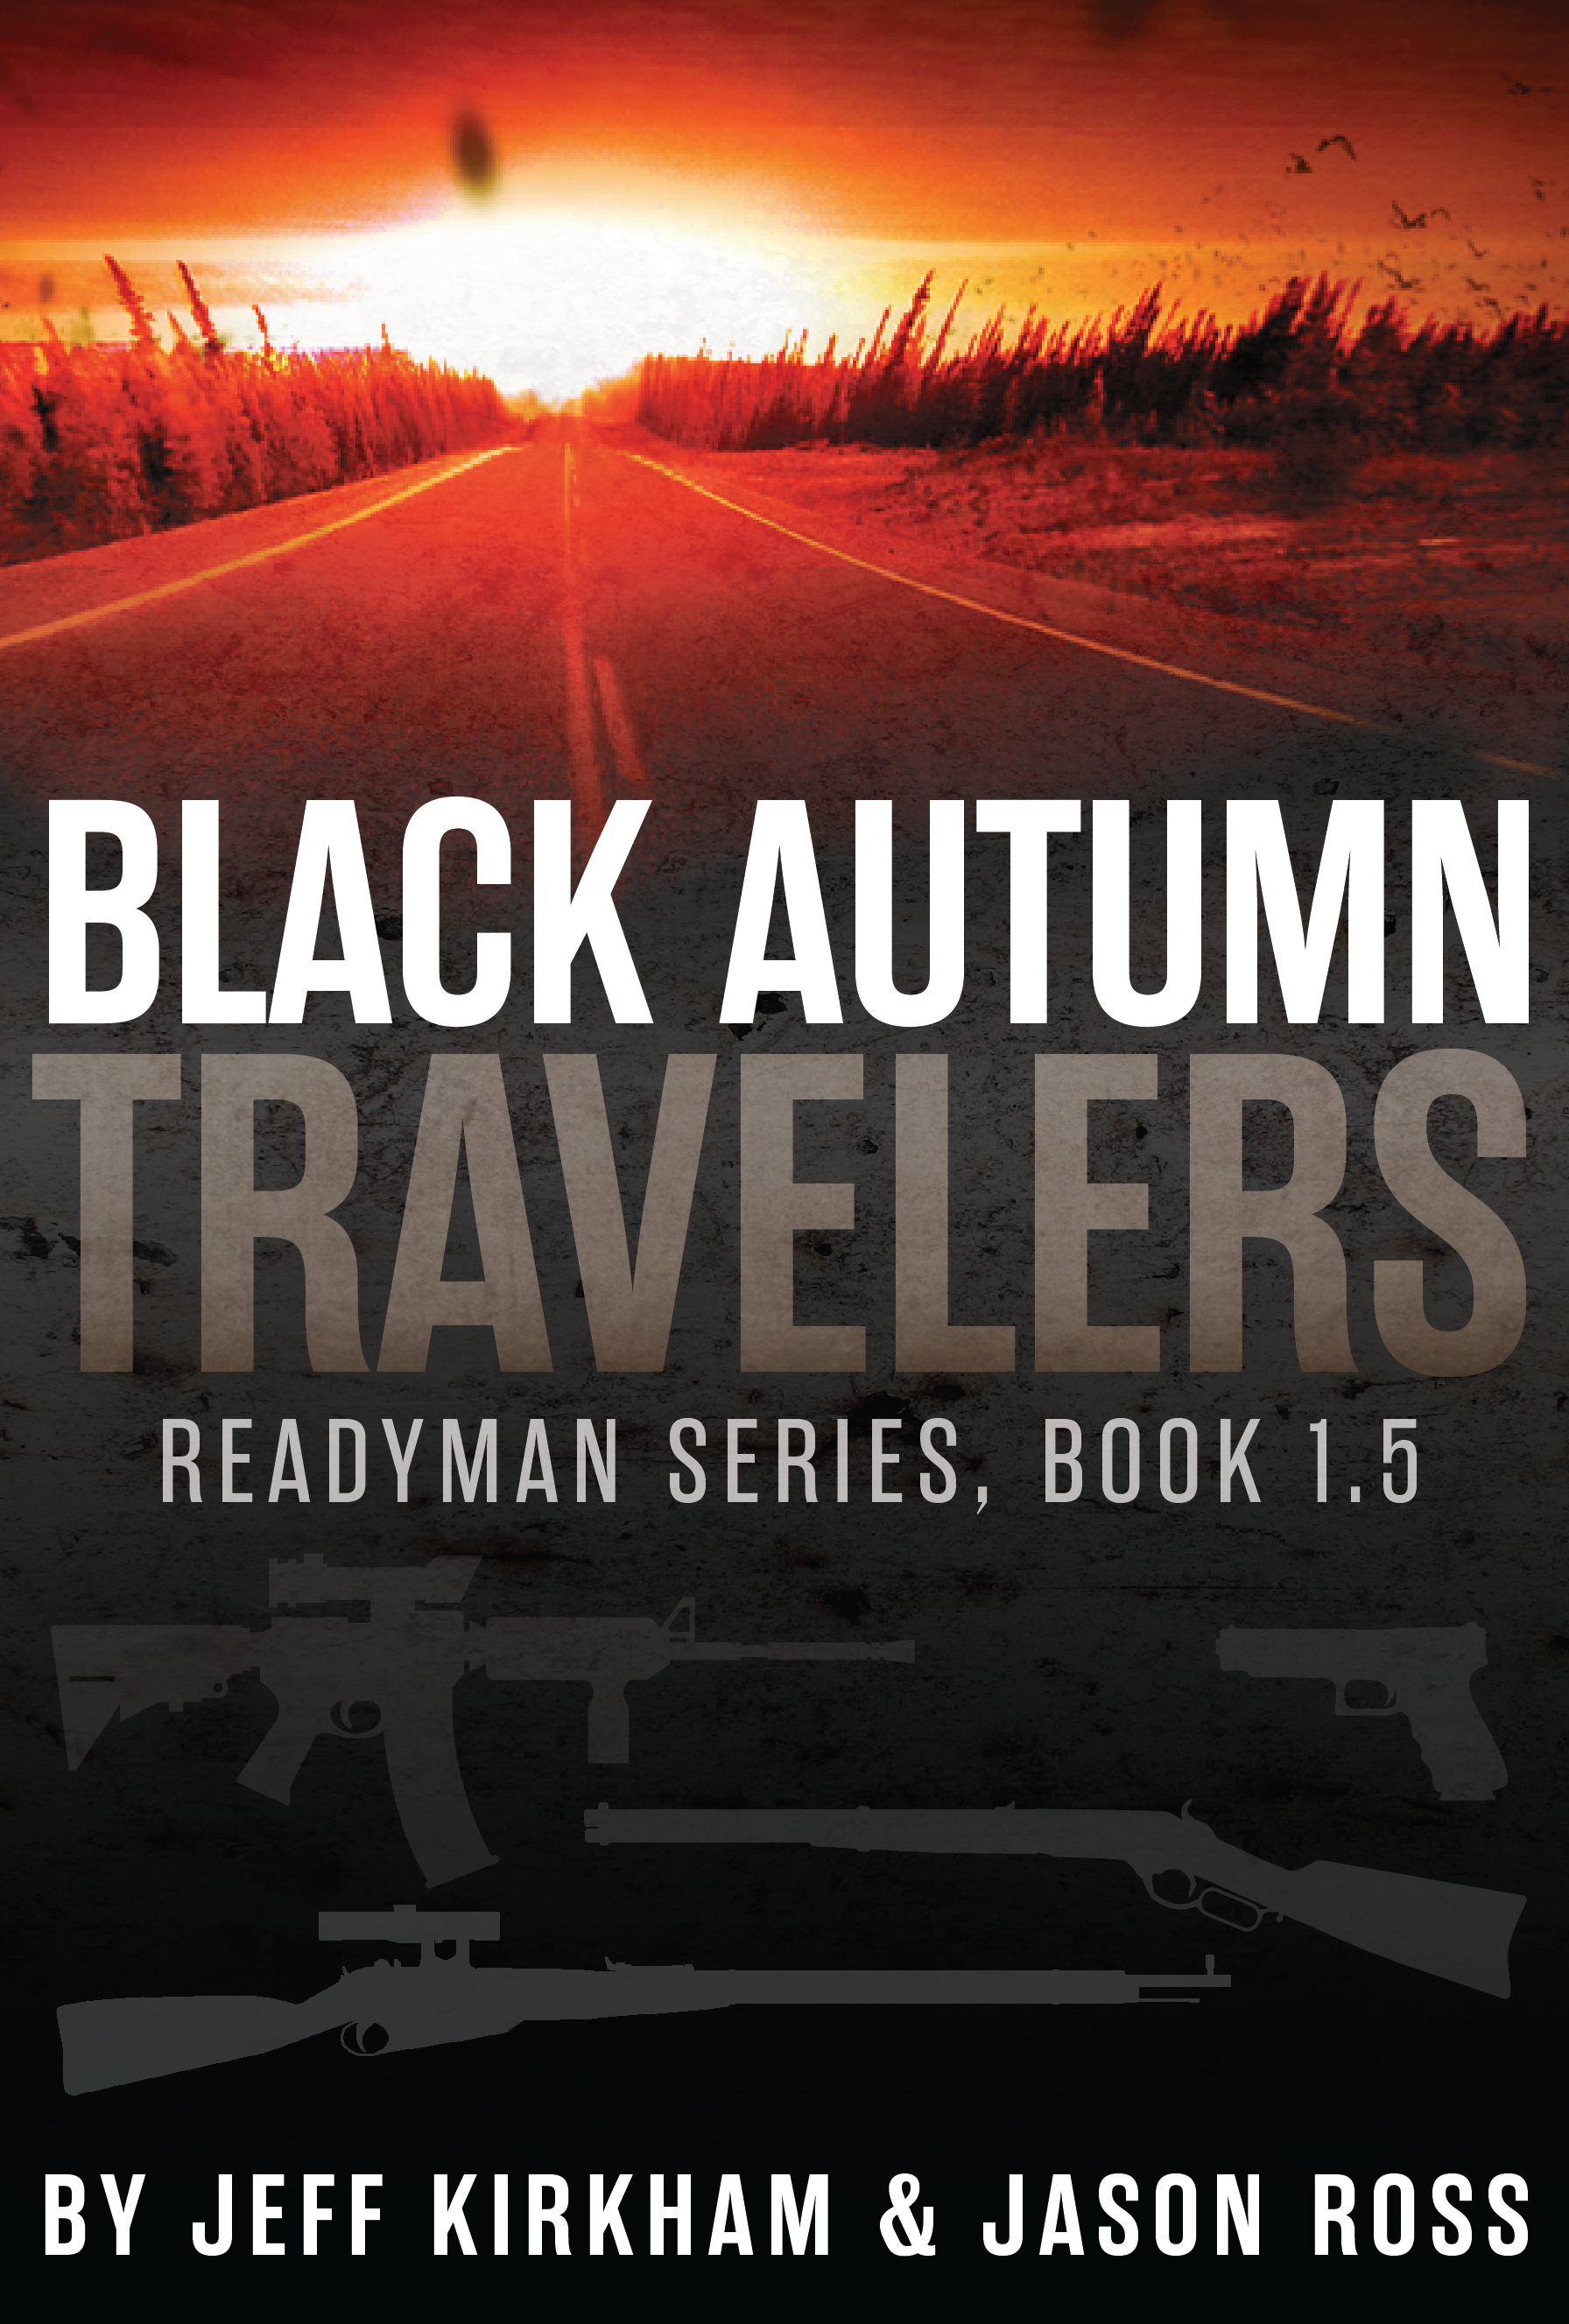 Black Autumn Travelers